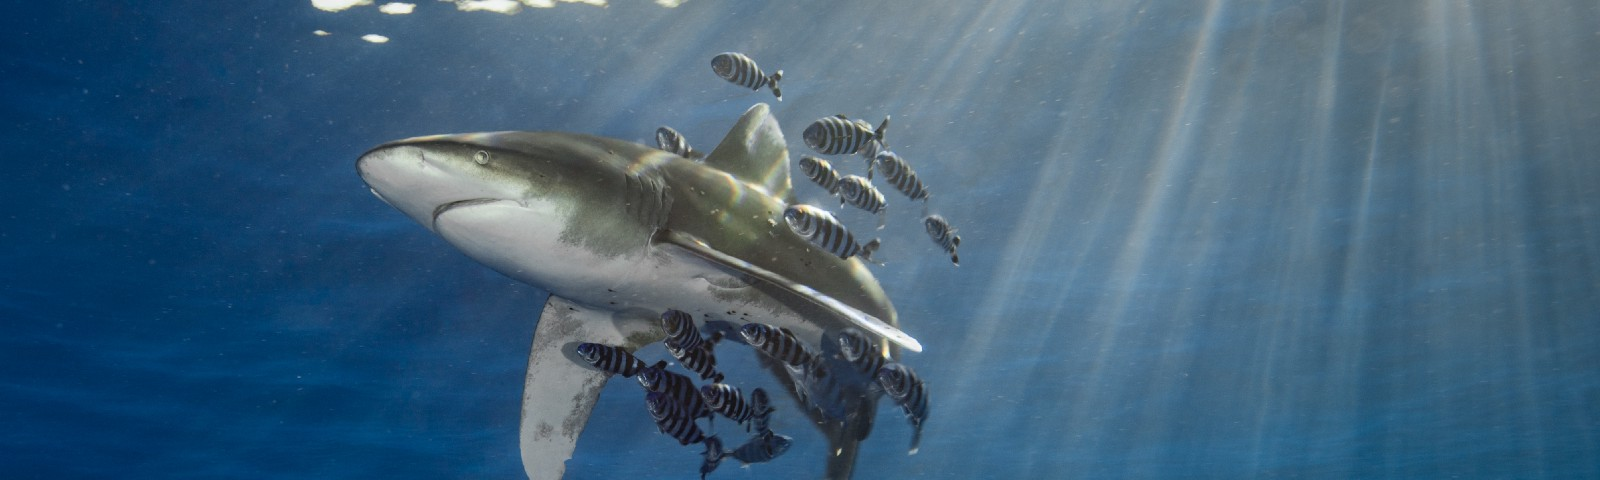 Oceanic whitetip shark with pilot fish and sunbeams